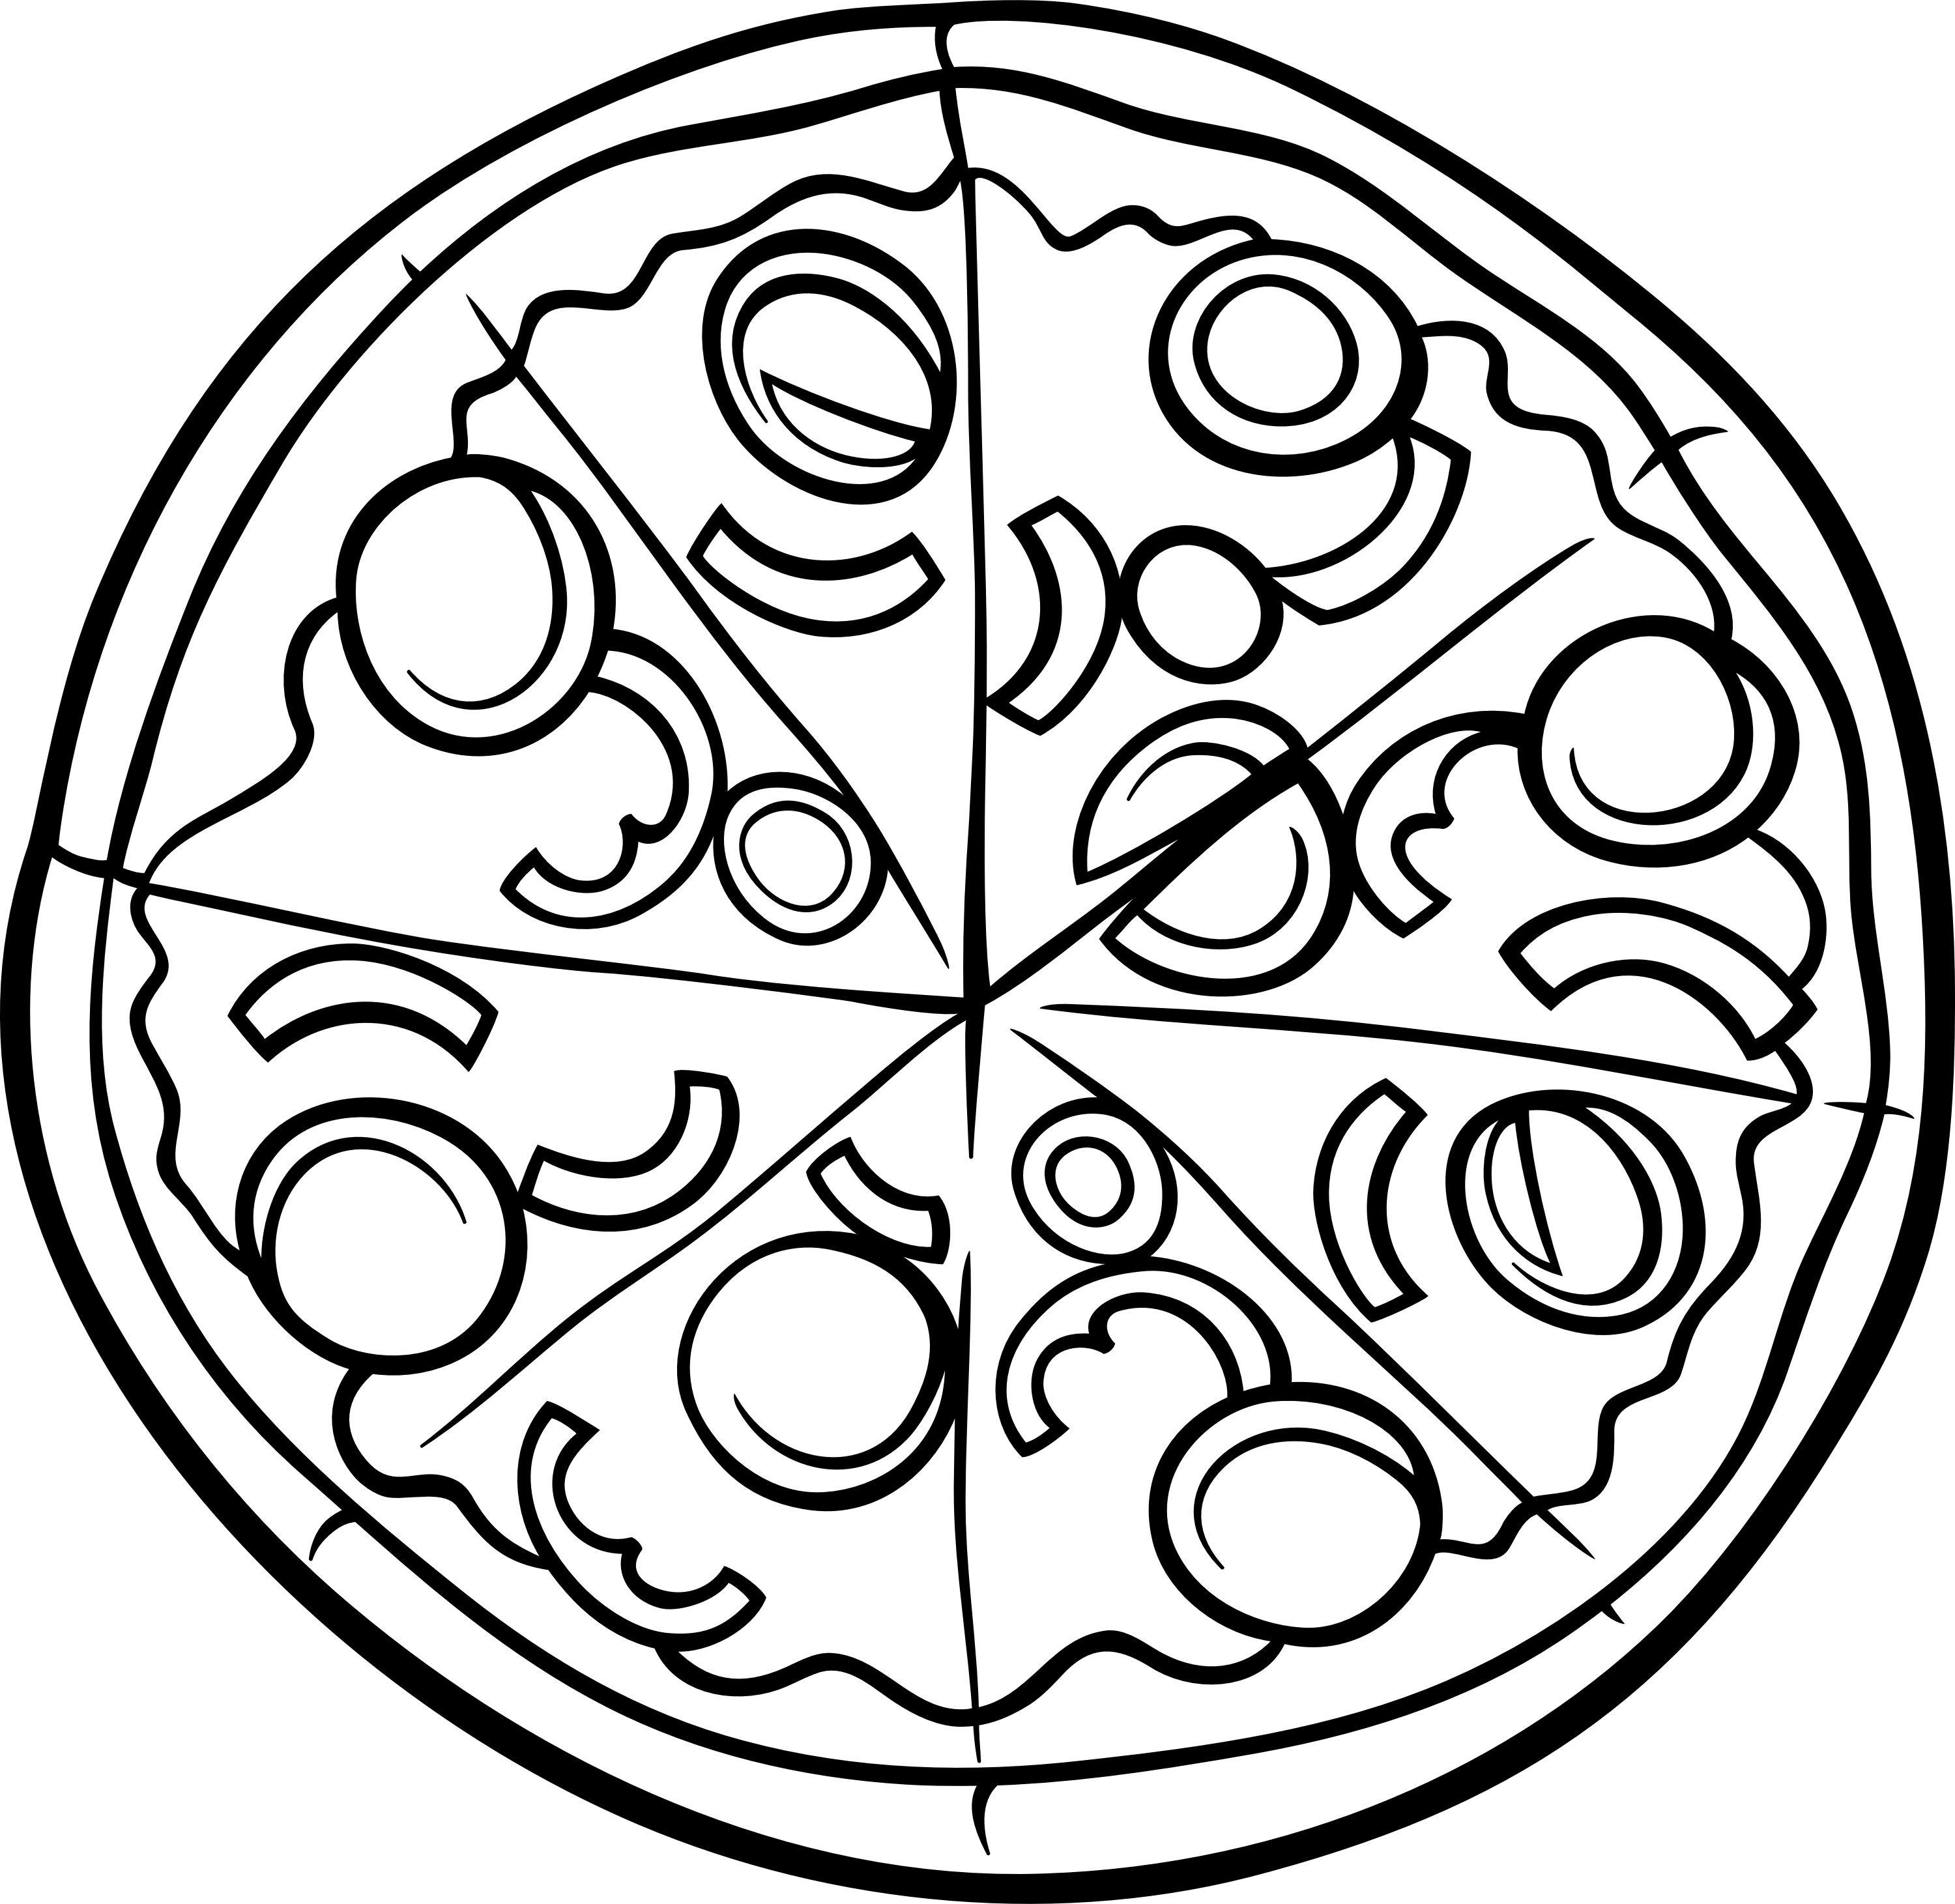 3000x2922 Pizza Coloring Page Printable Food Art